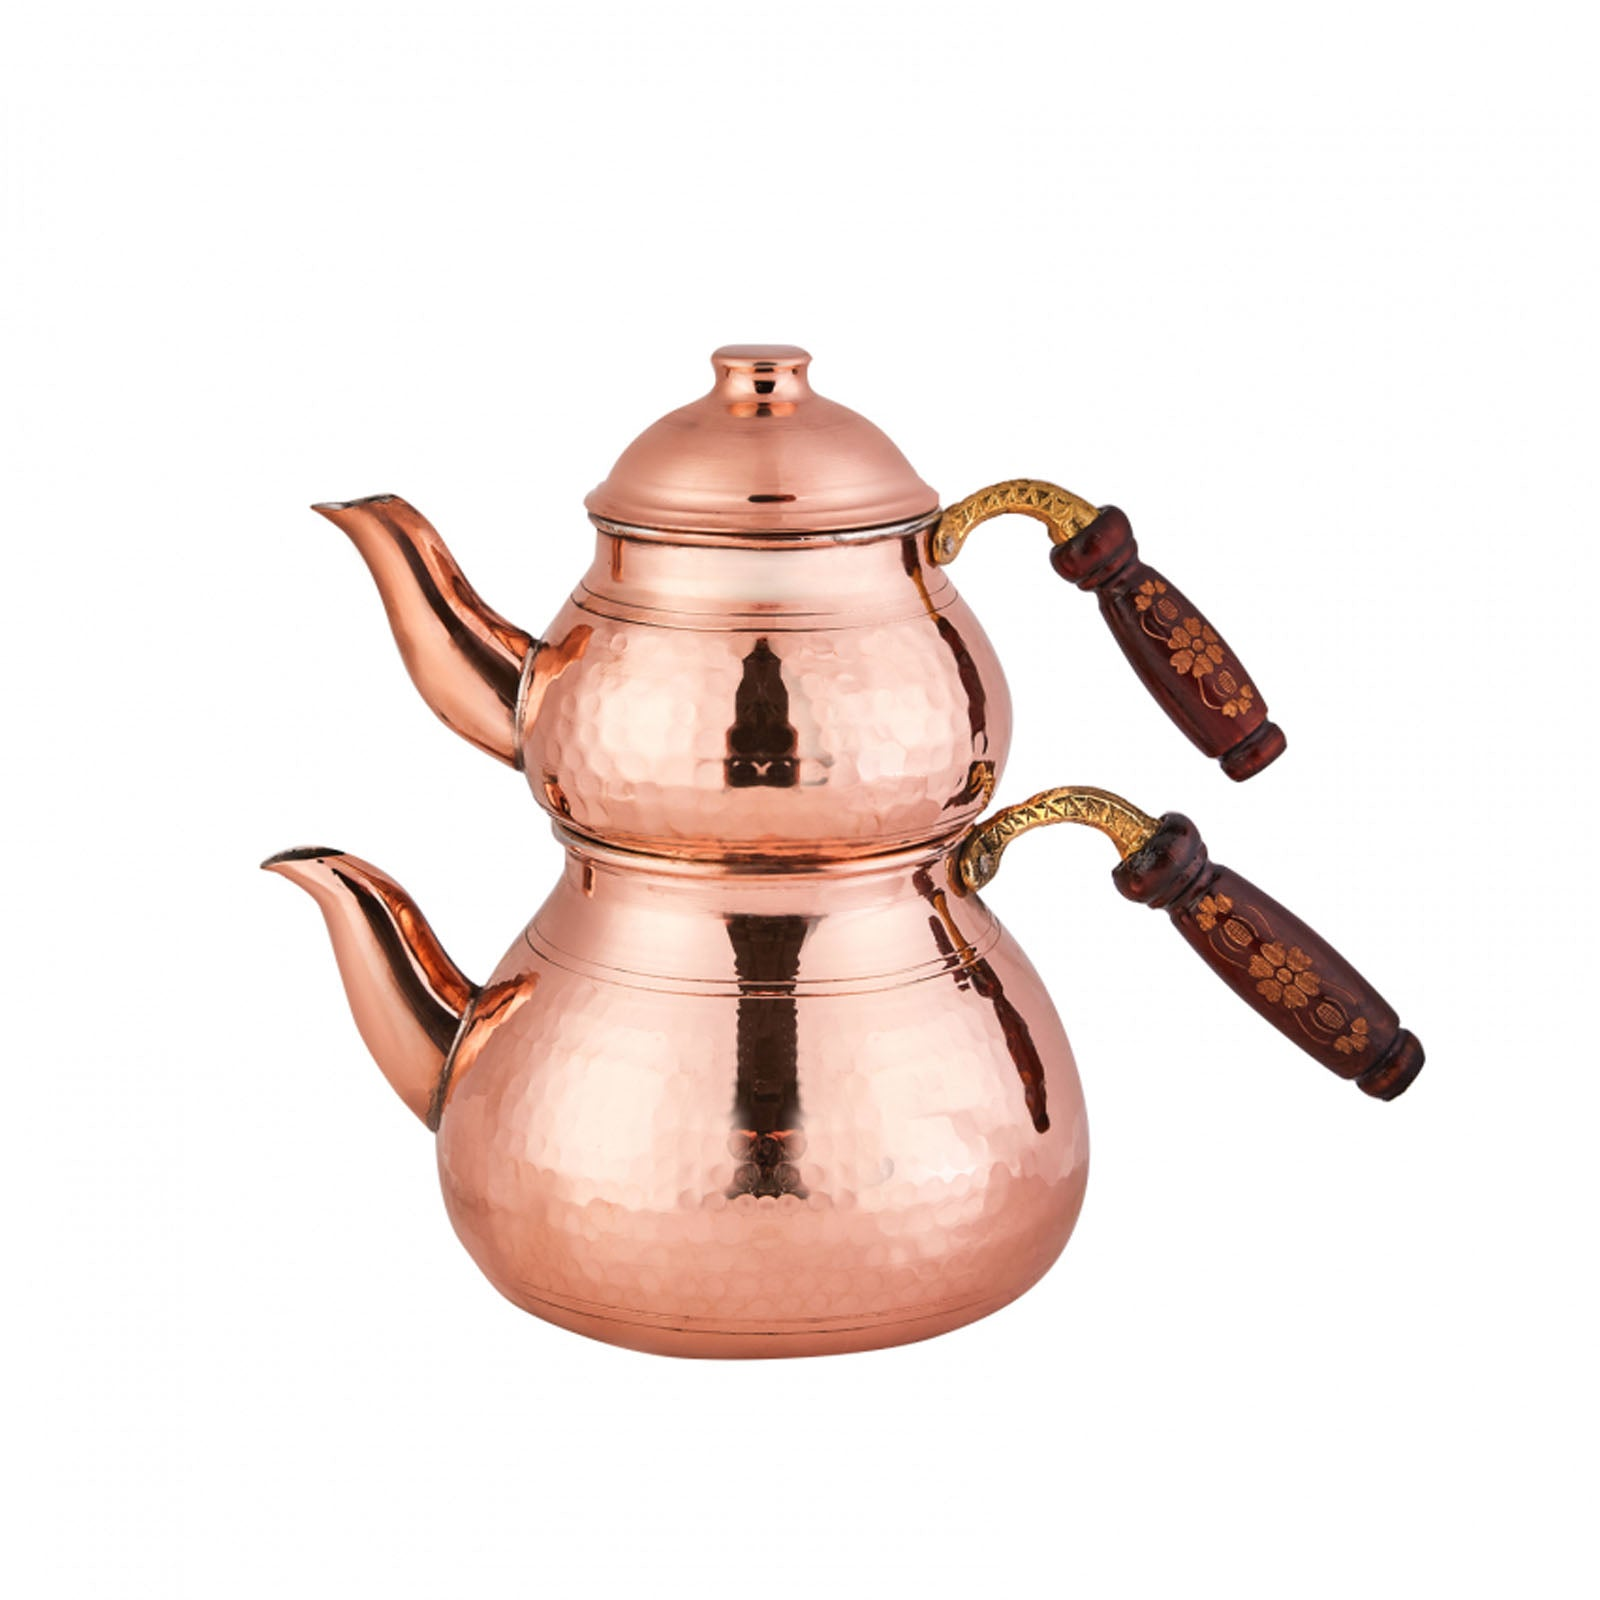 Karaca Nish Copper New Copper Teapot Set 153.03.07.9114 - ebarza